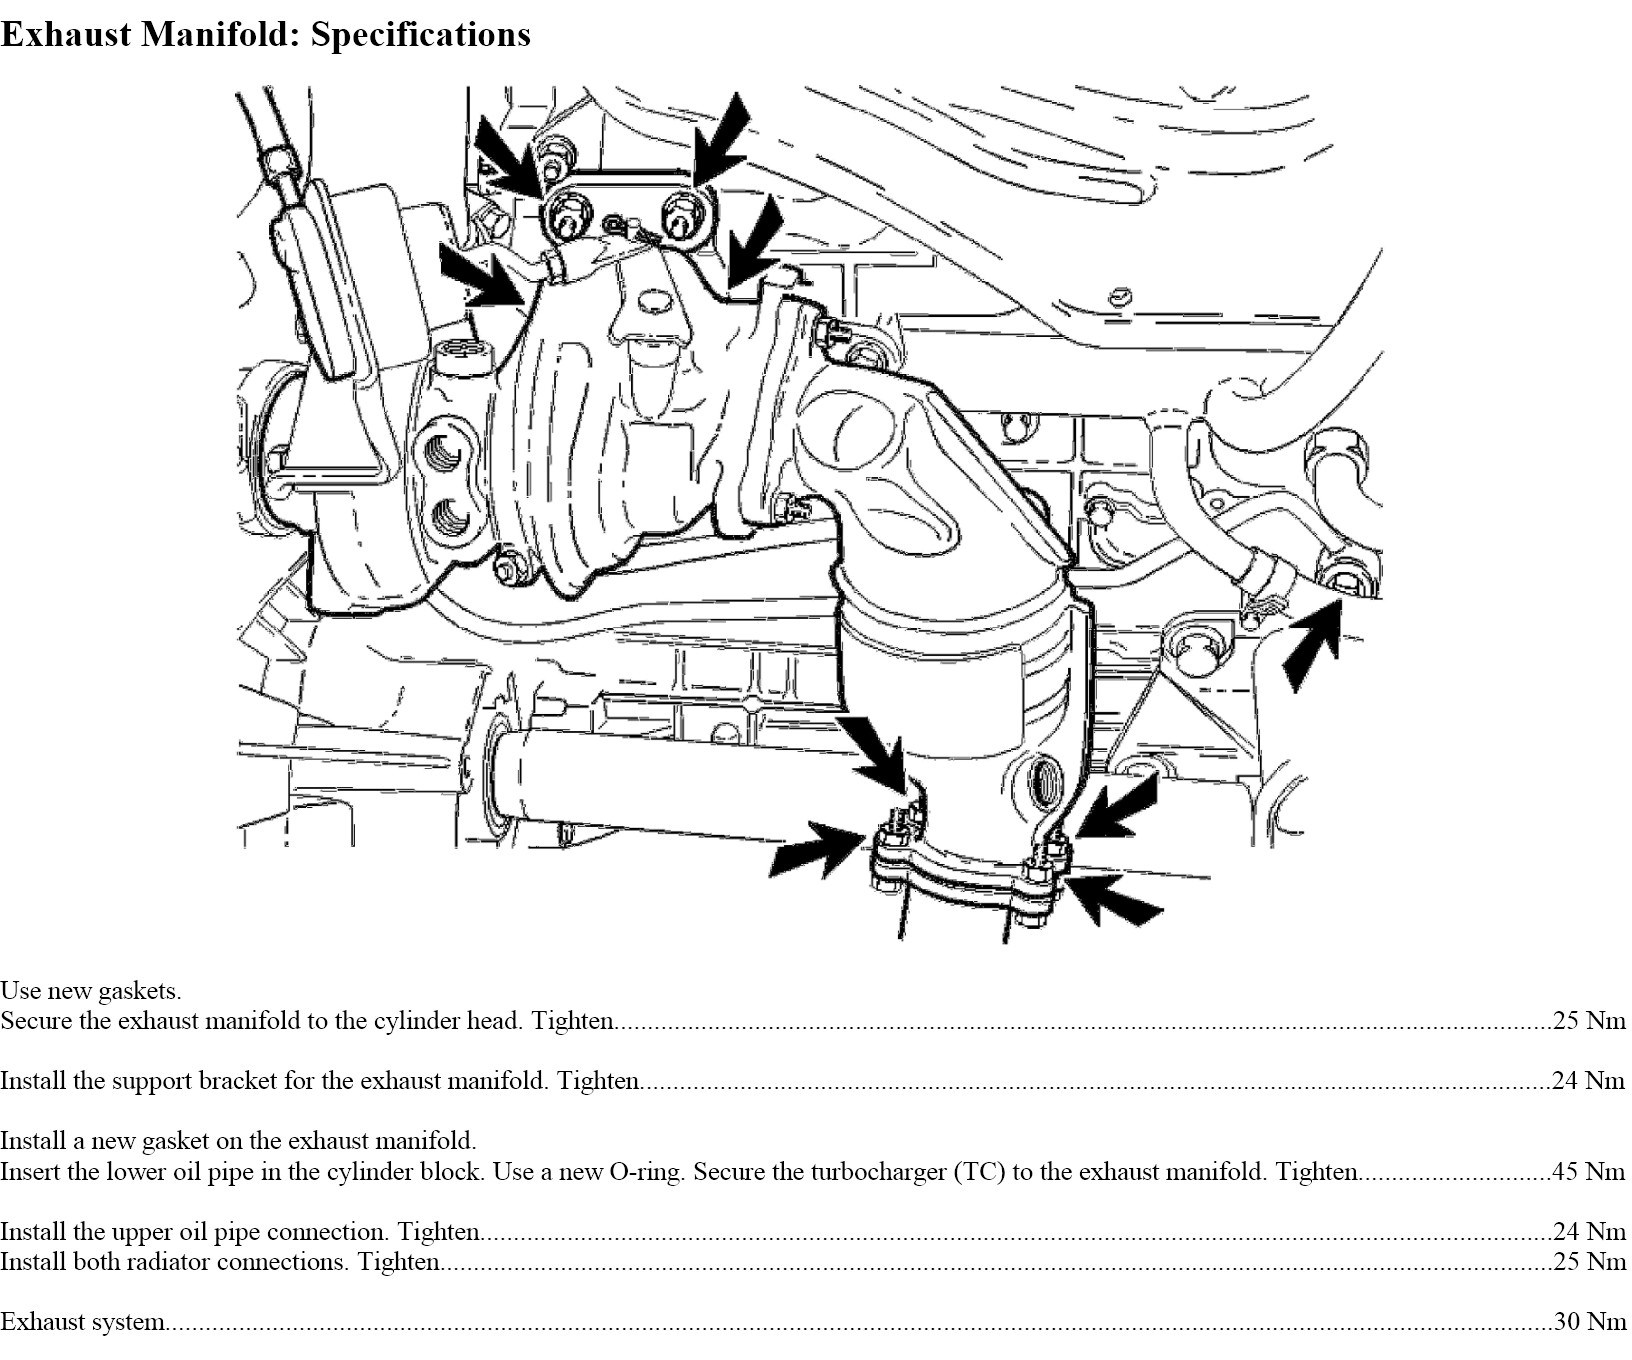 What Are The Exhaust Manifold Torque Specs And Torque